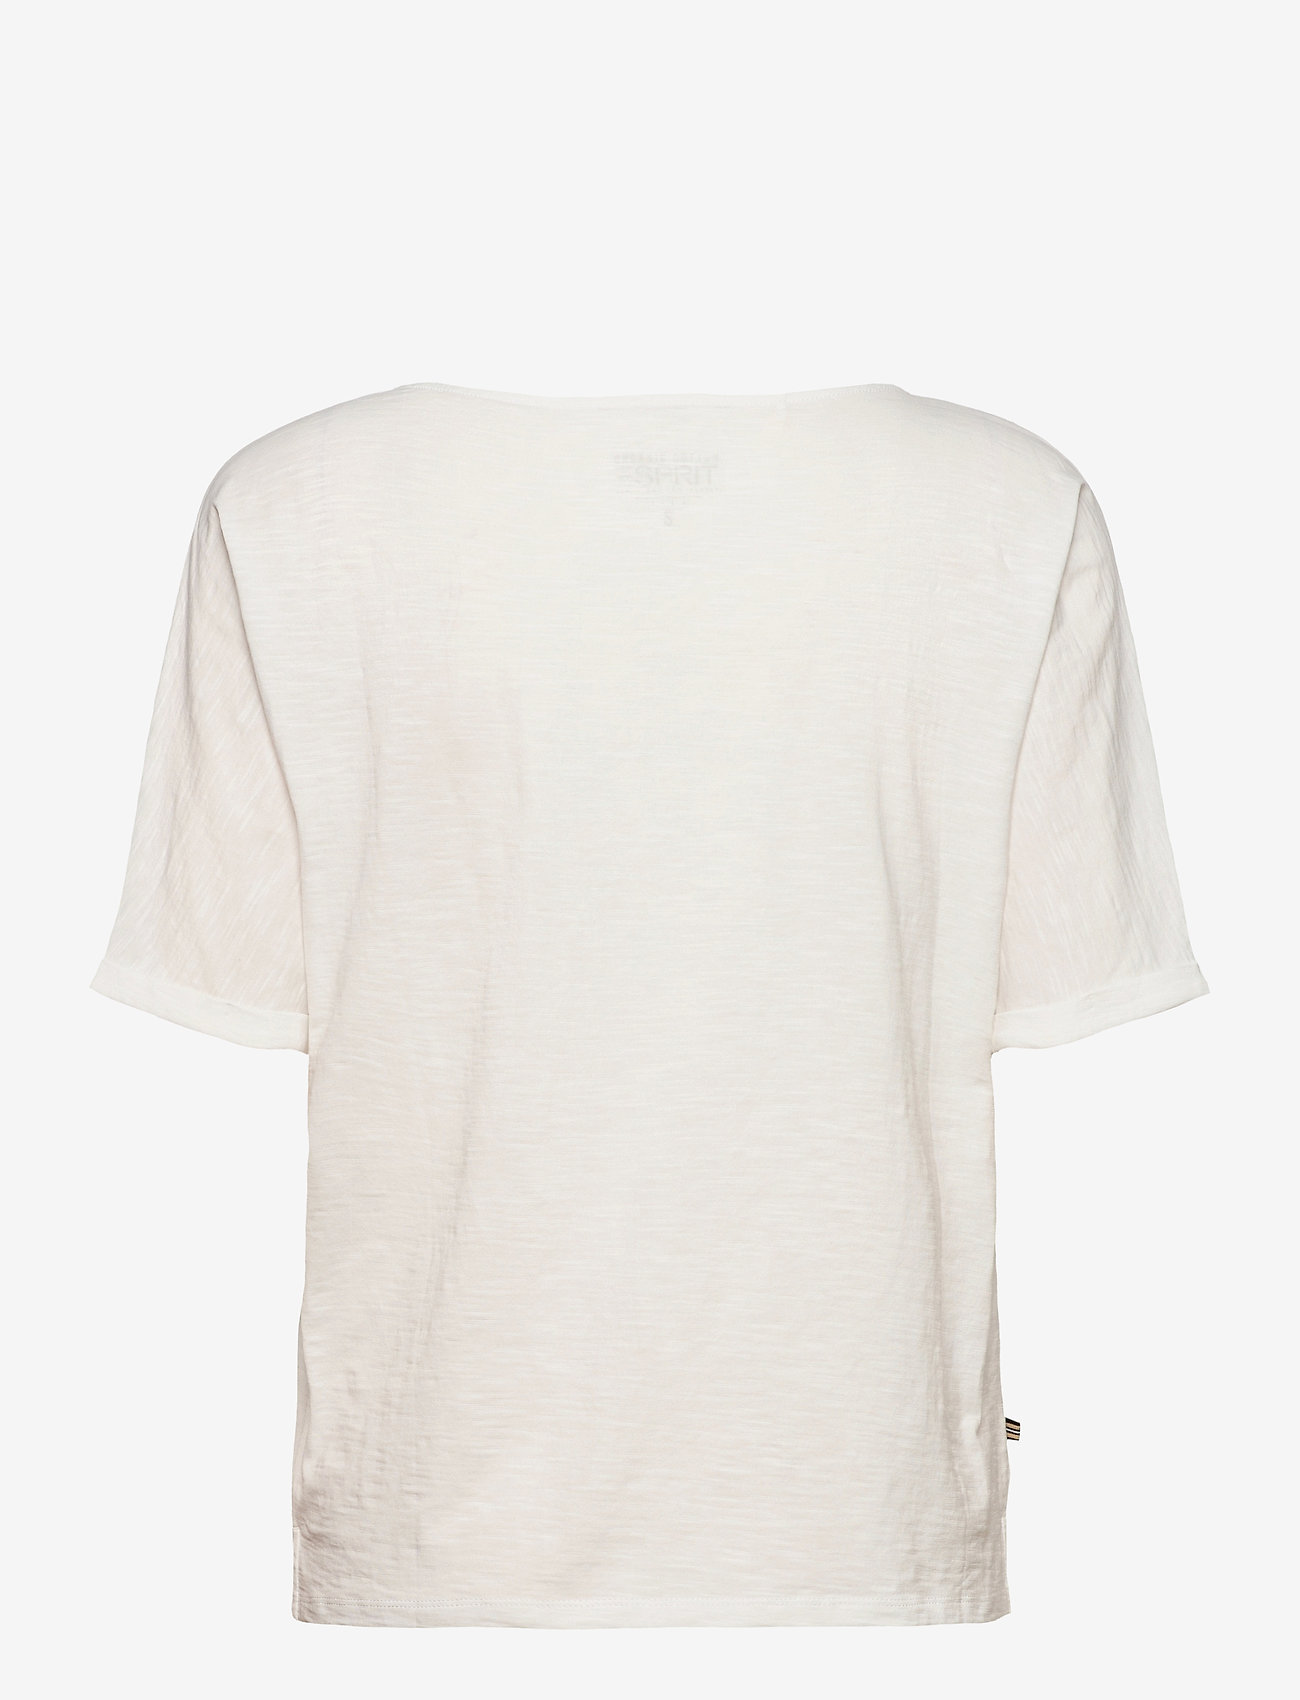 Esprit Casual - T-Shirts - t-shirt & tops - off white - 1